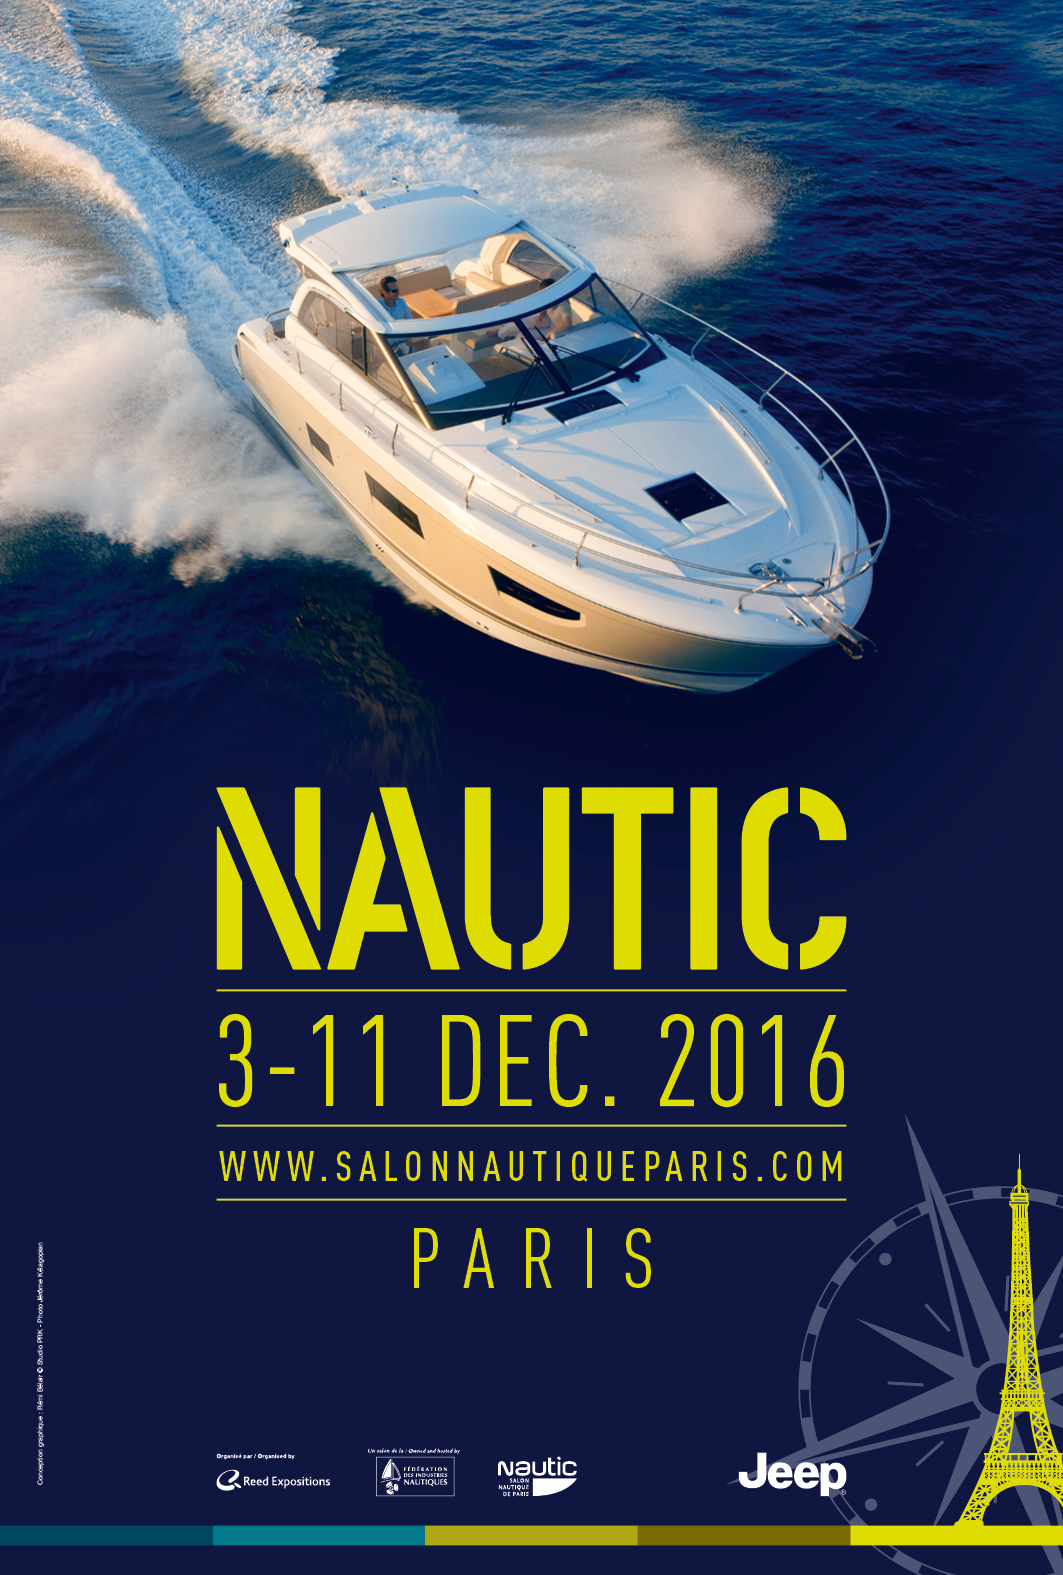 Salon nautic affiche 2016 bateau 1 cubisystem for Salon bateau paris